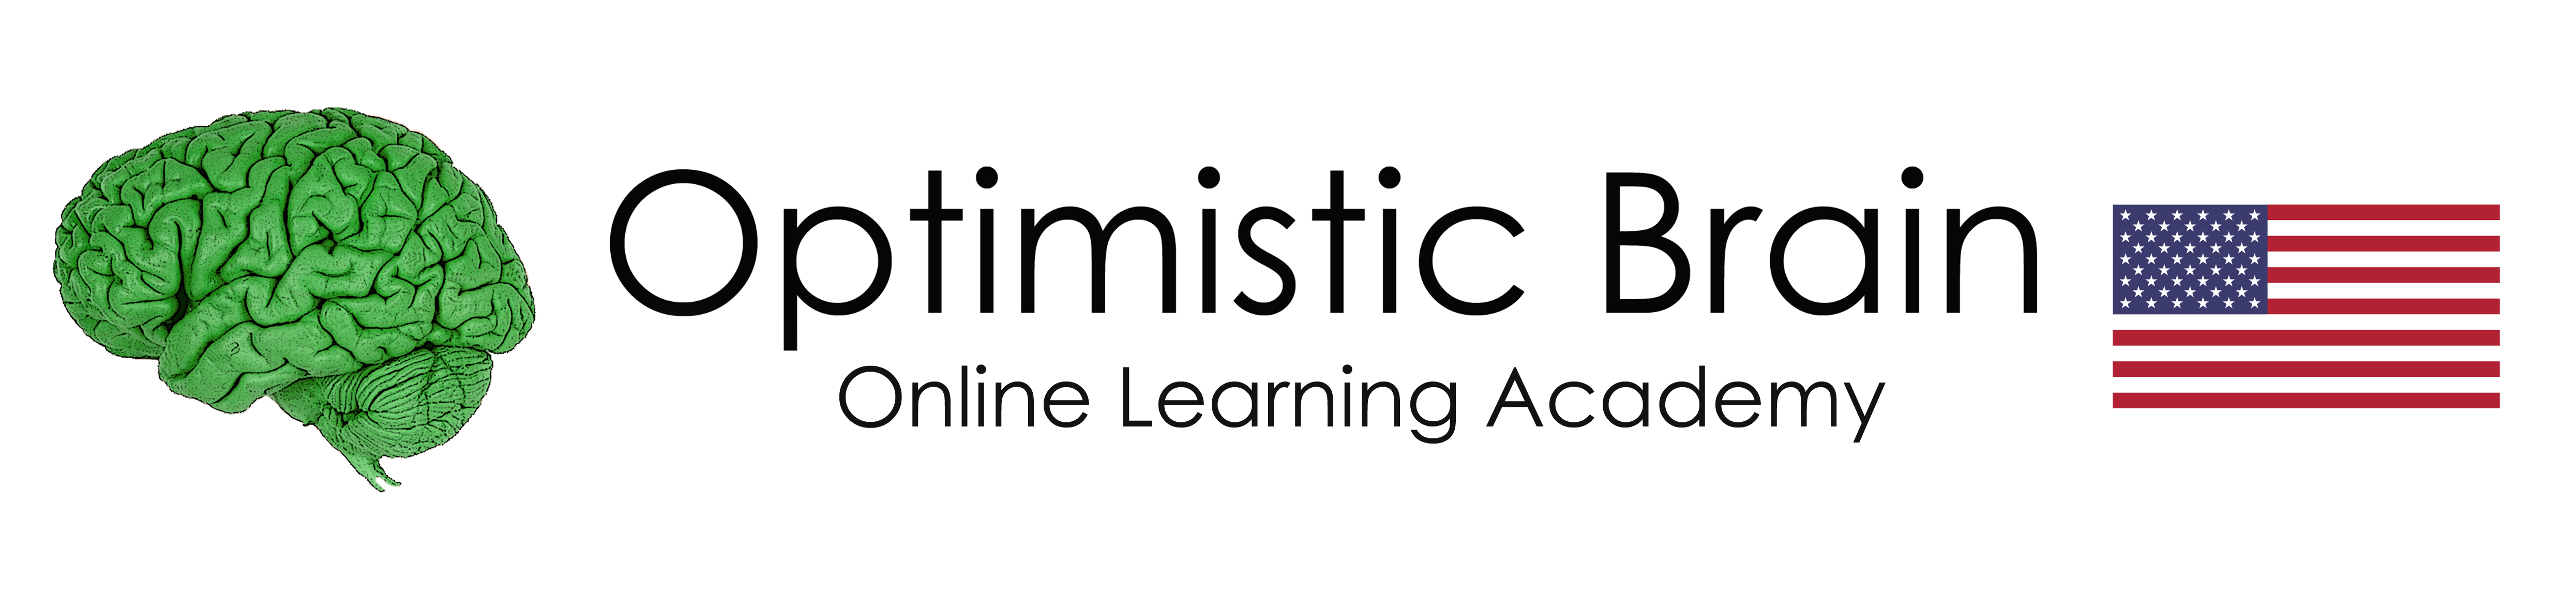 US Optimistic Brain Academy